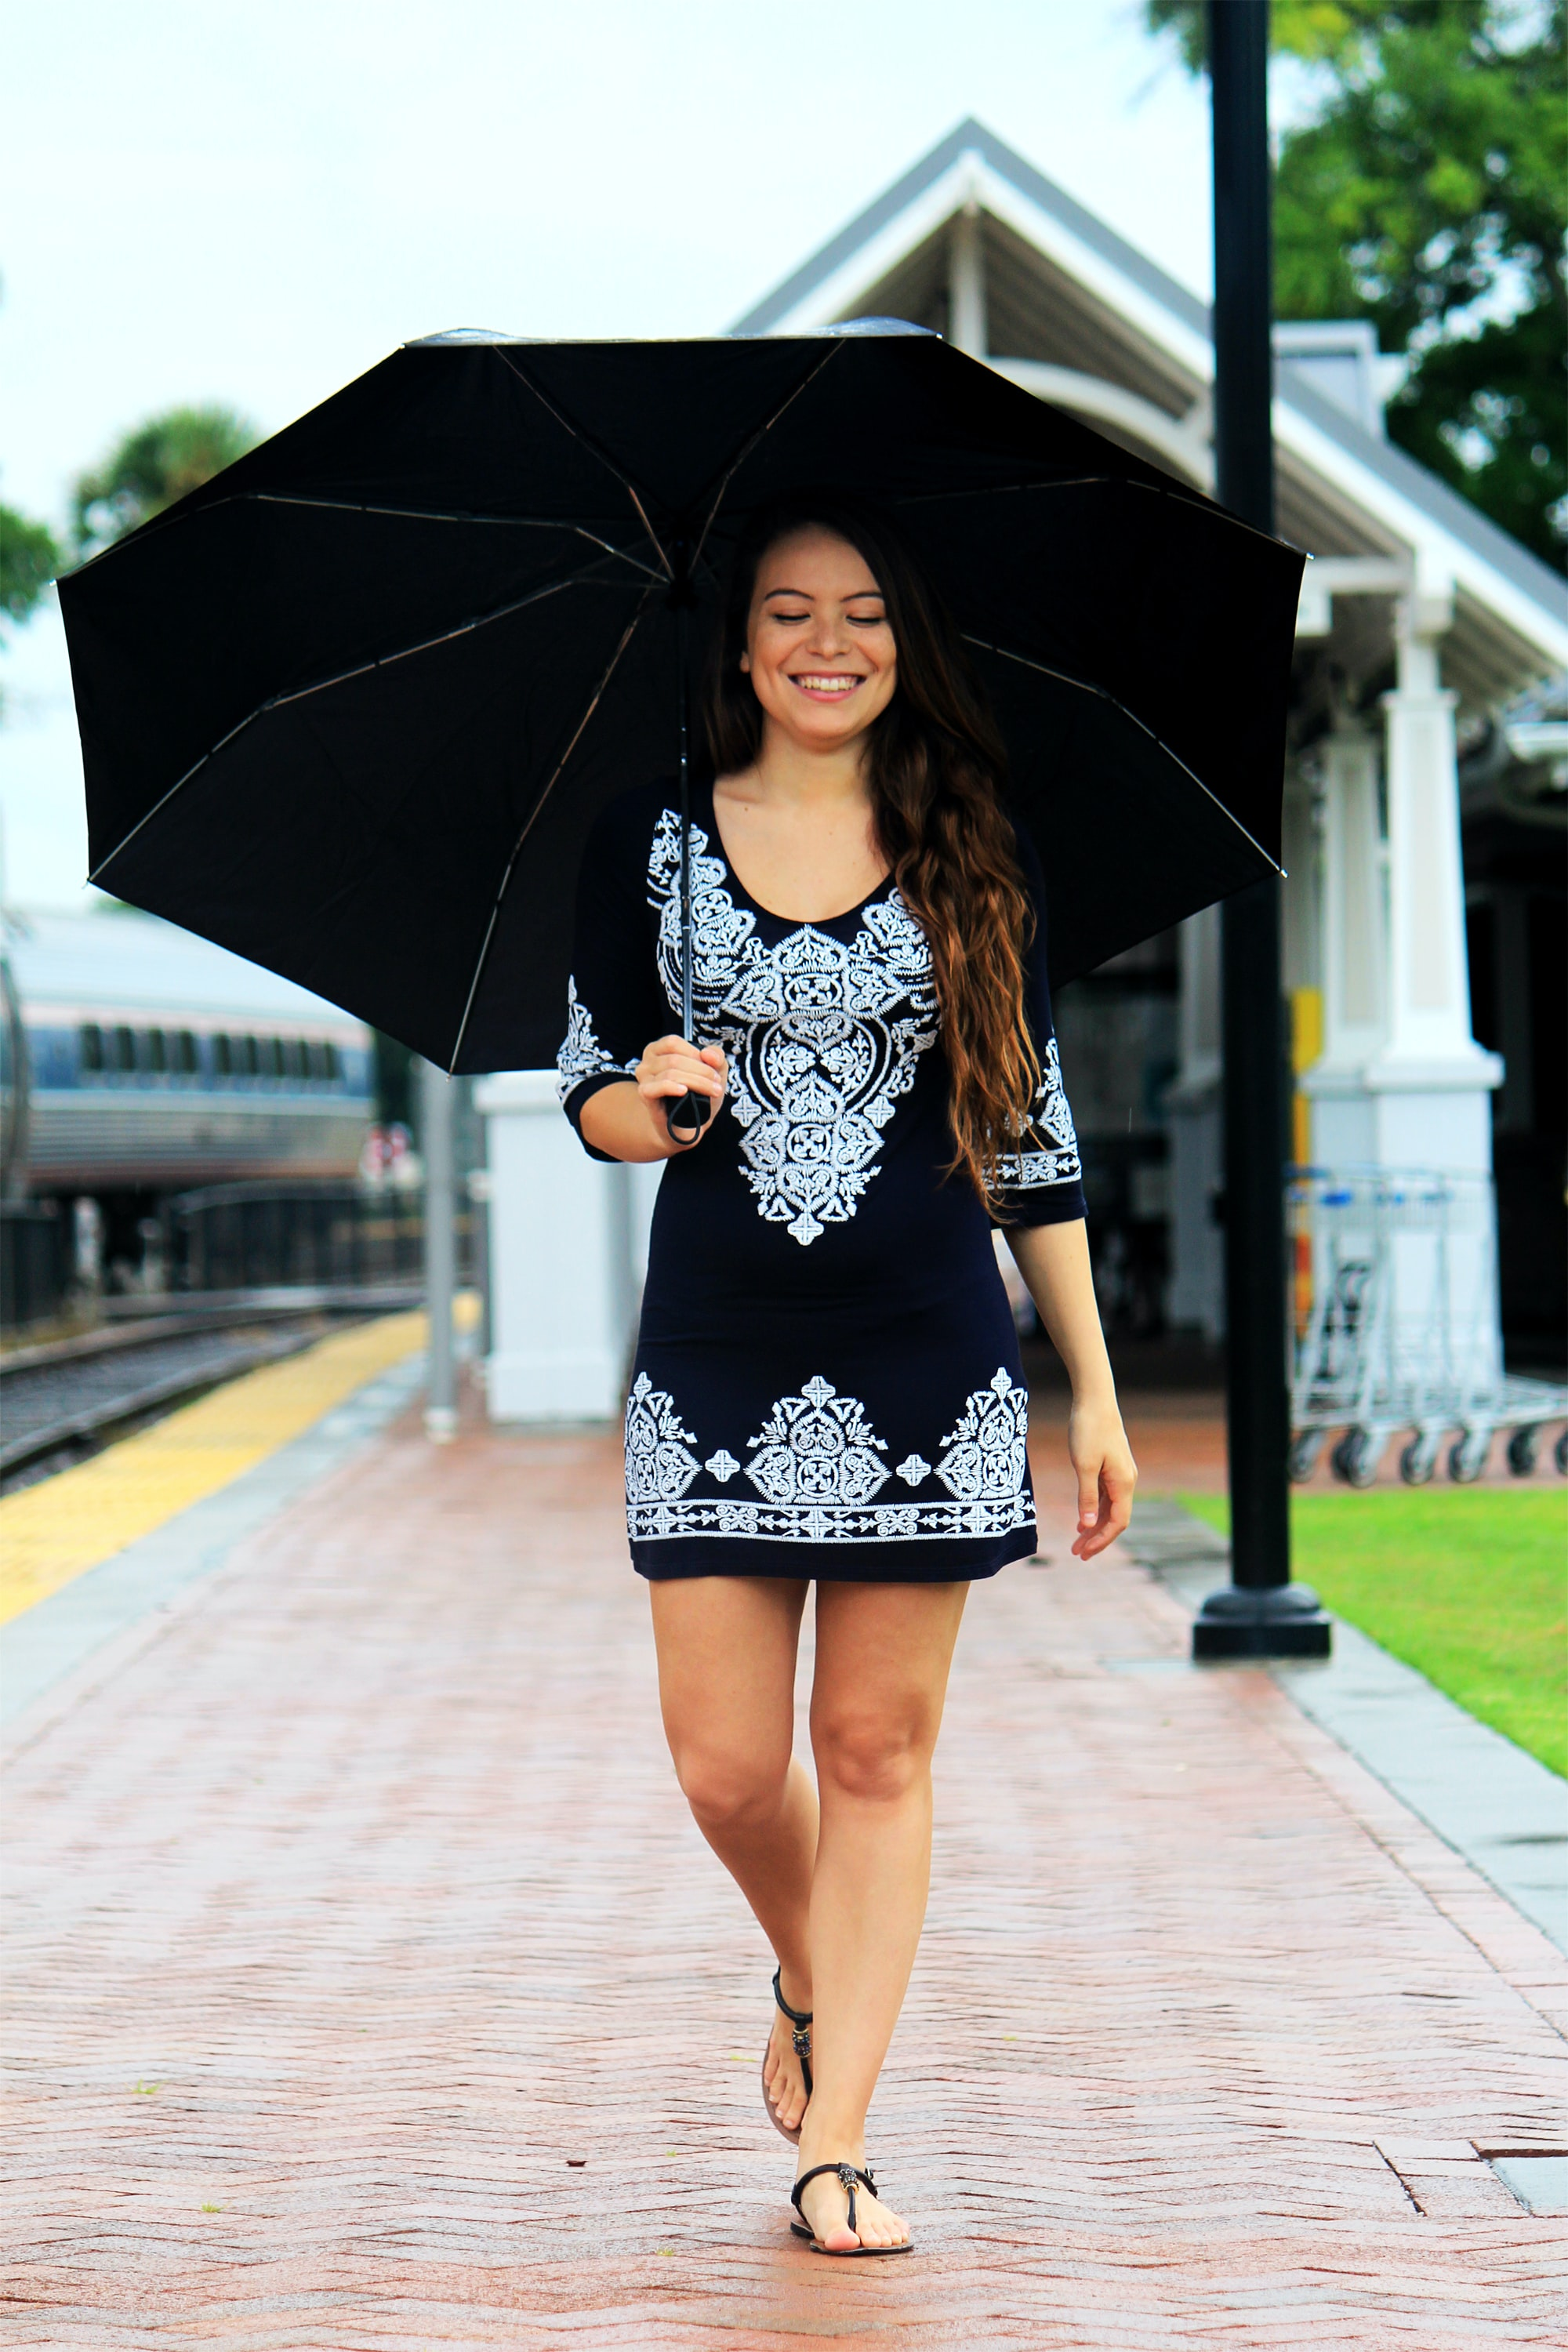 Smiling woman in black dress with closed eyes walks along a brick path, holding an umbrella